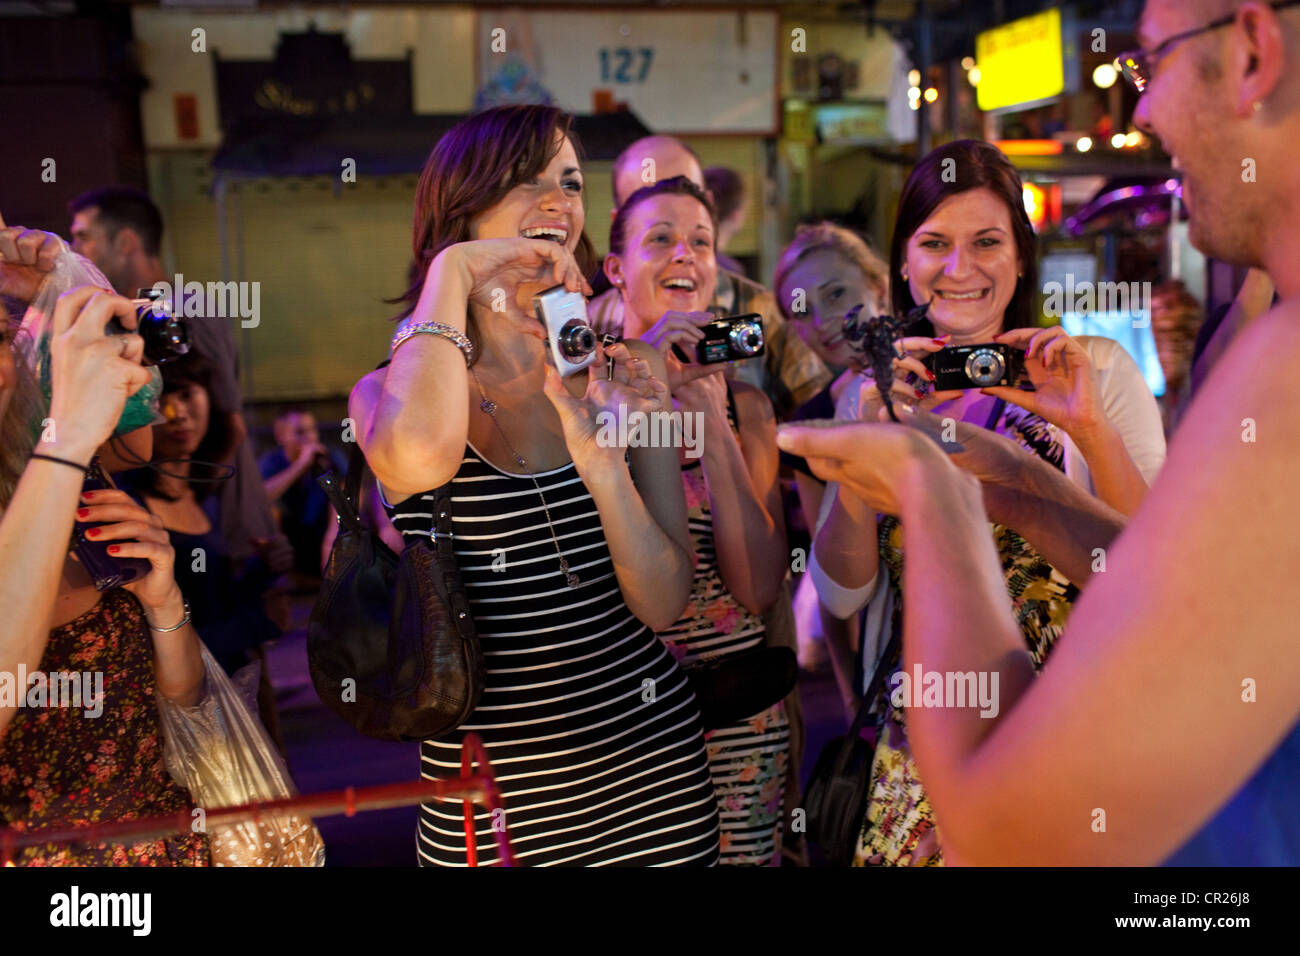 Tourists take a photo of another tourist eating a scorpion on Khao San Road, Bangkok, Thailand. - Stock Image